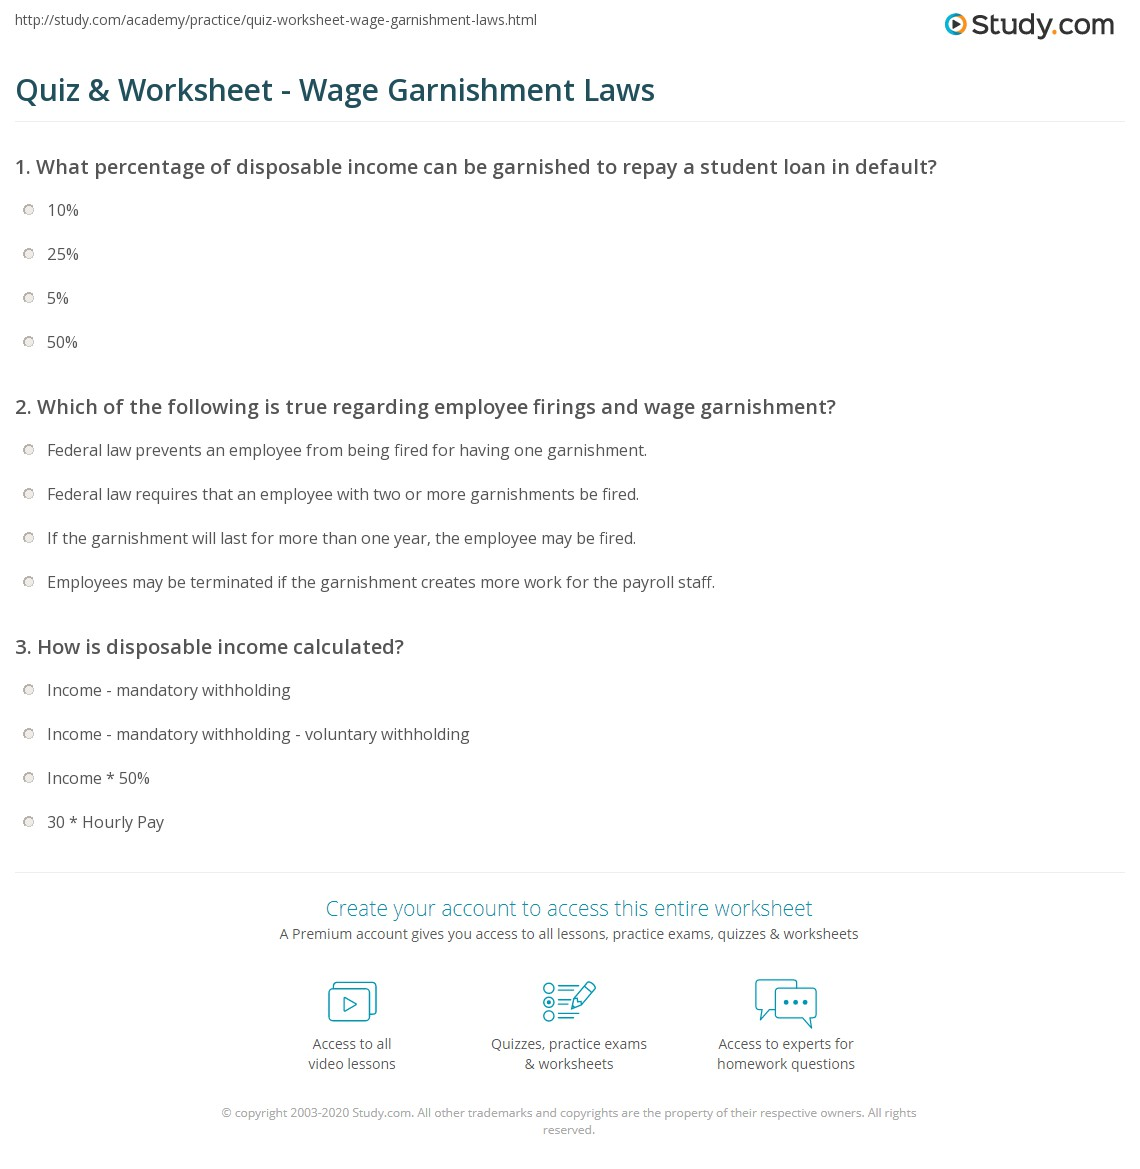 Worksheets Garnishment Worksheet wage garnishment worksheet defendusinbattleblog quiz laws study com